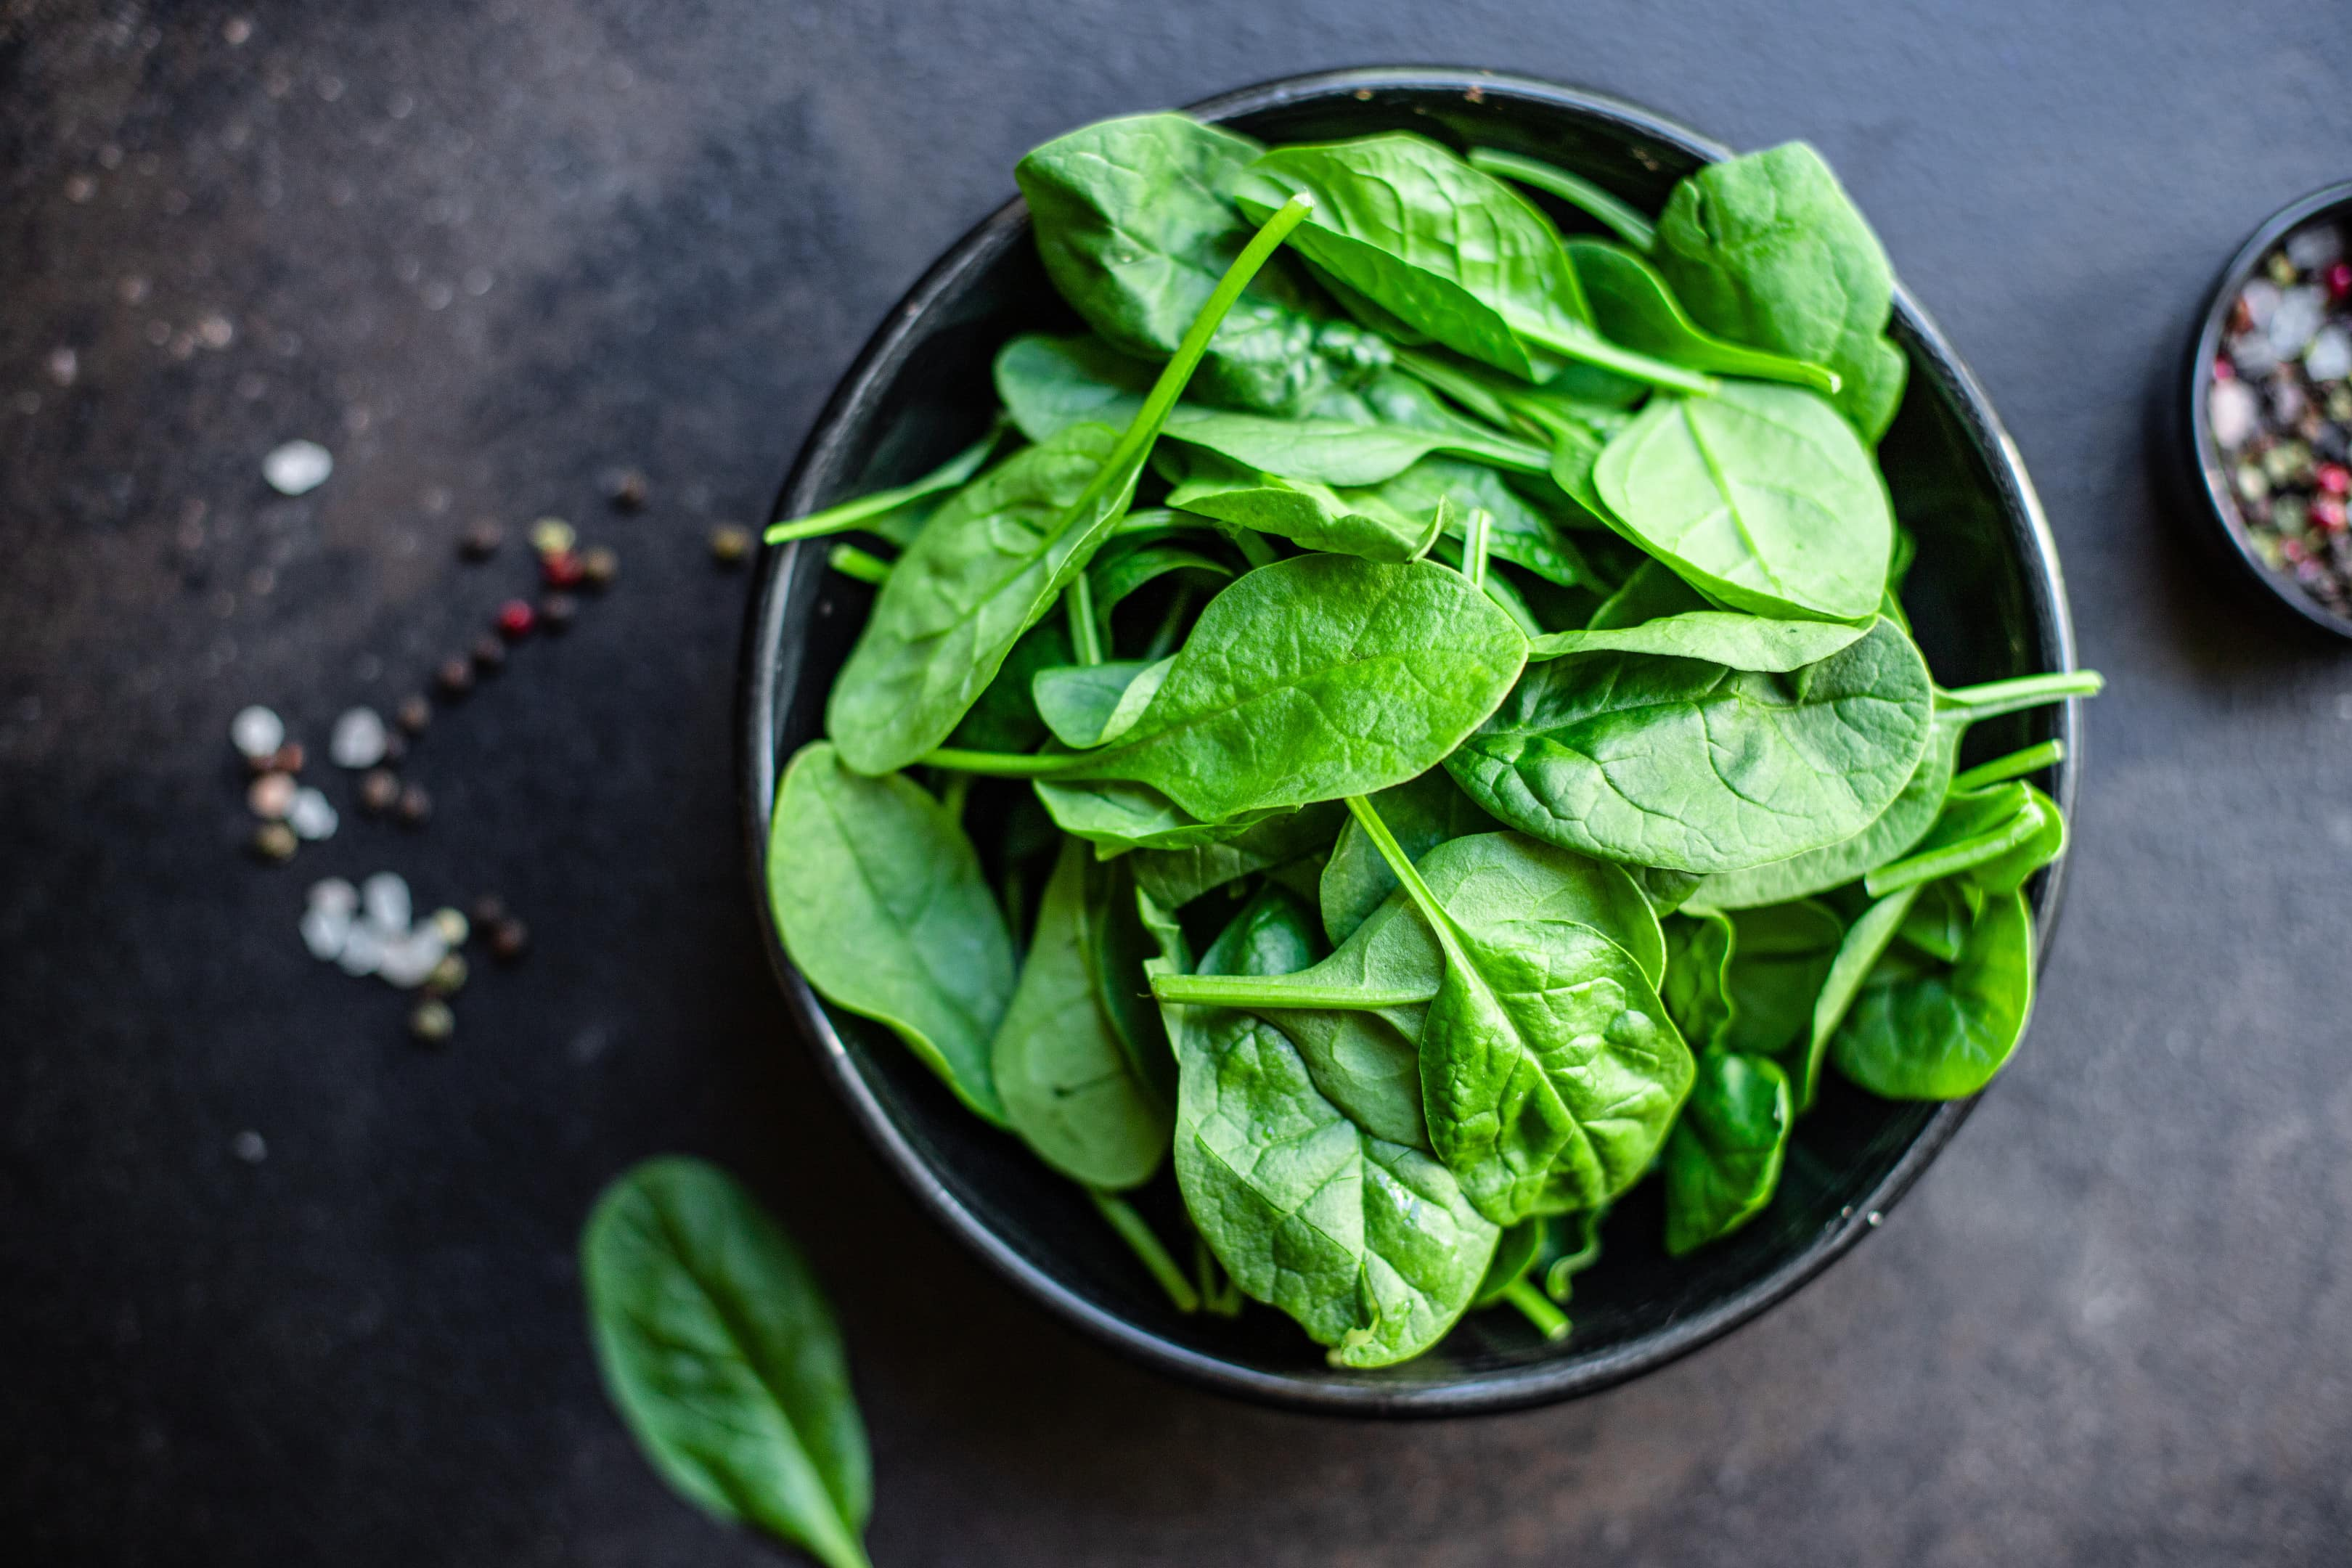 Spinach leaves in ceramic plate on kitchen table